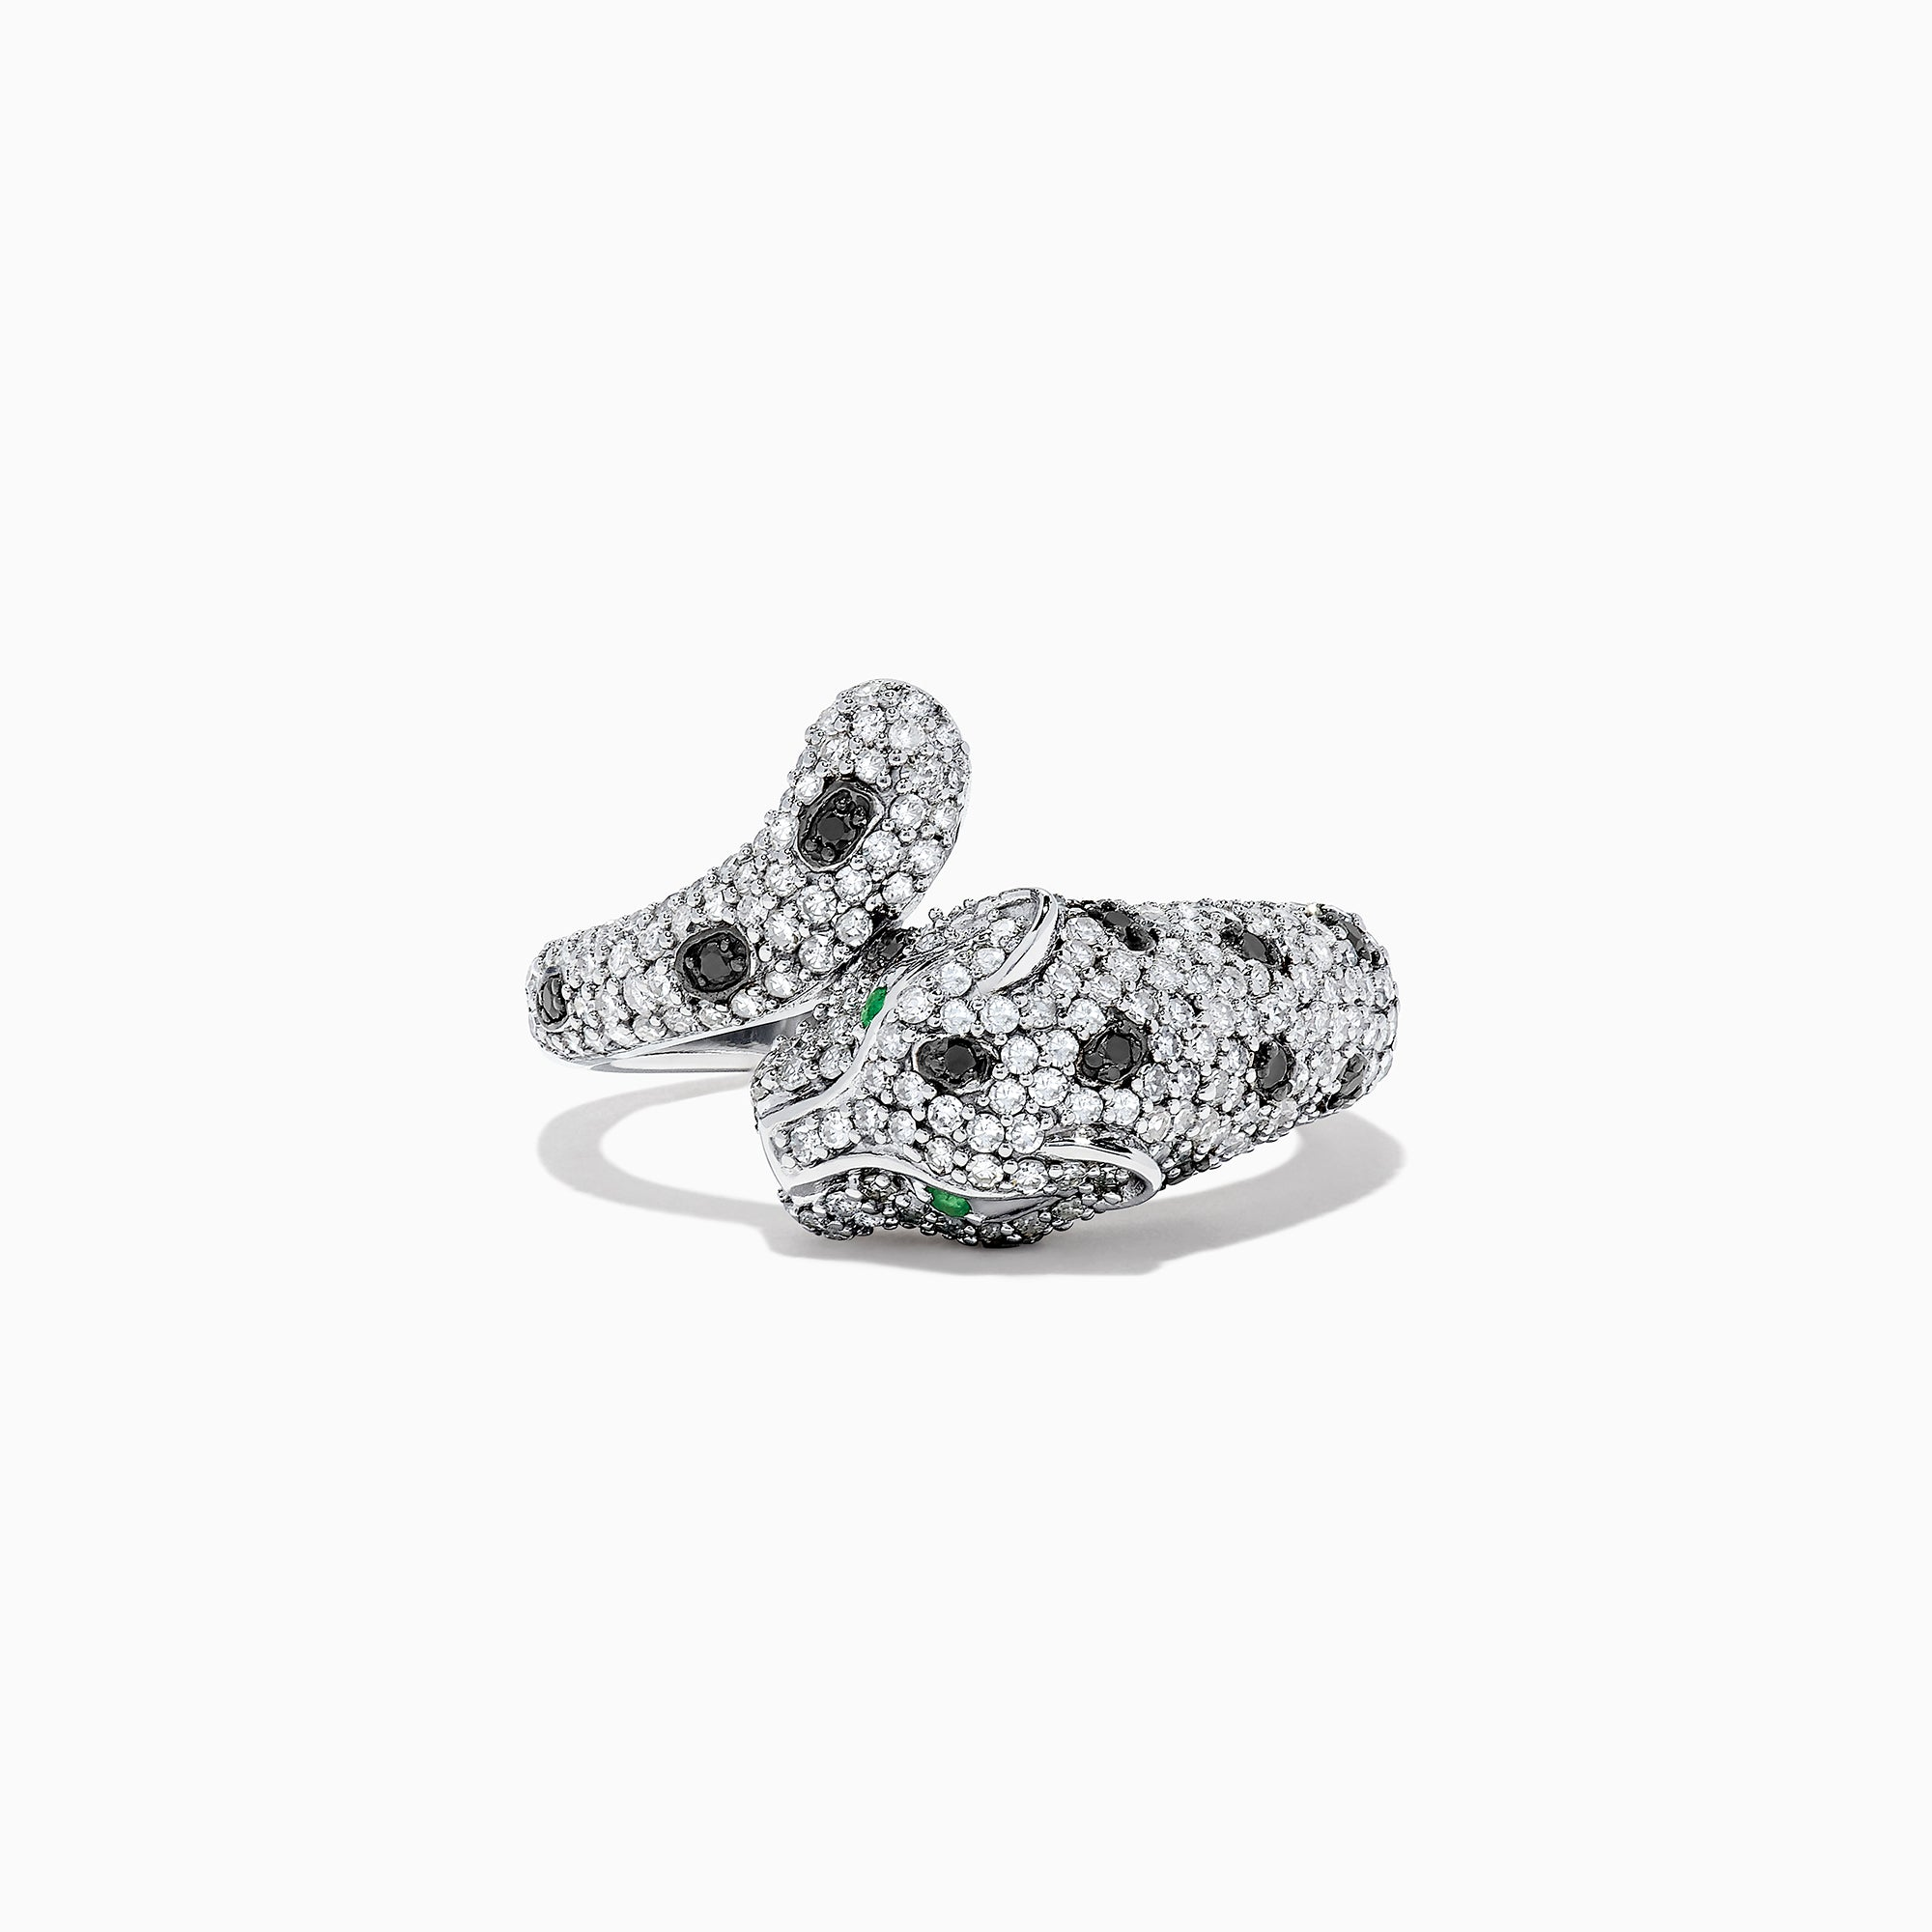 Effy Signature 14K White Gold Diamond & Emerald Panther Ring, 0.95 TCW